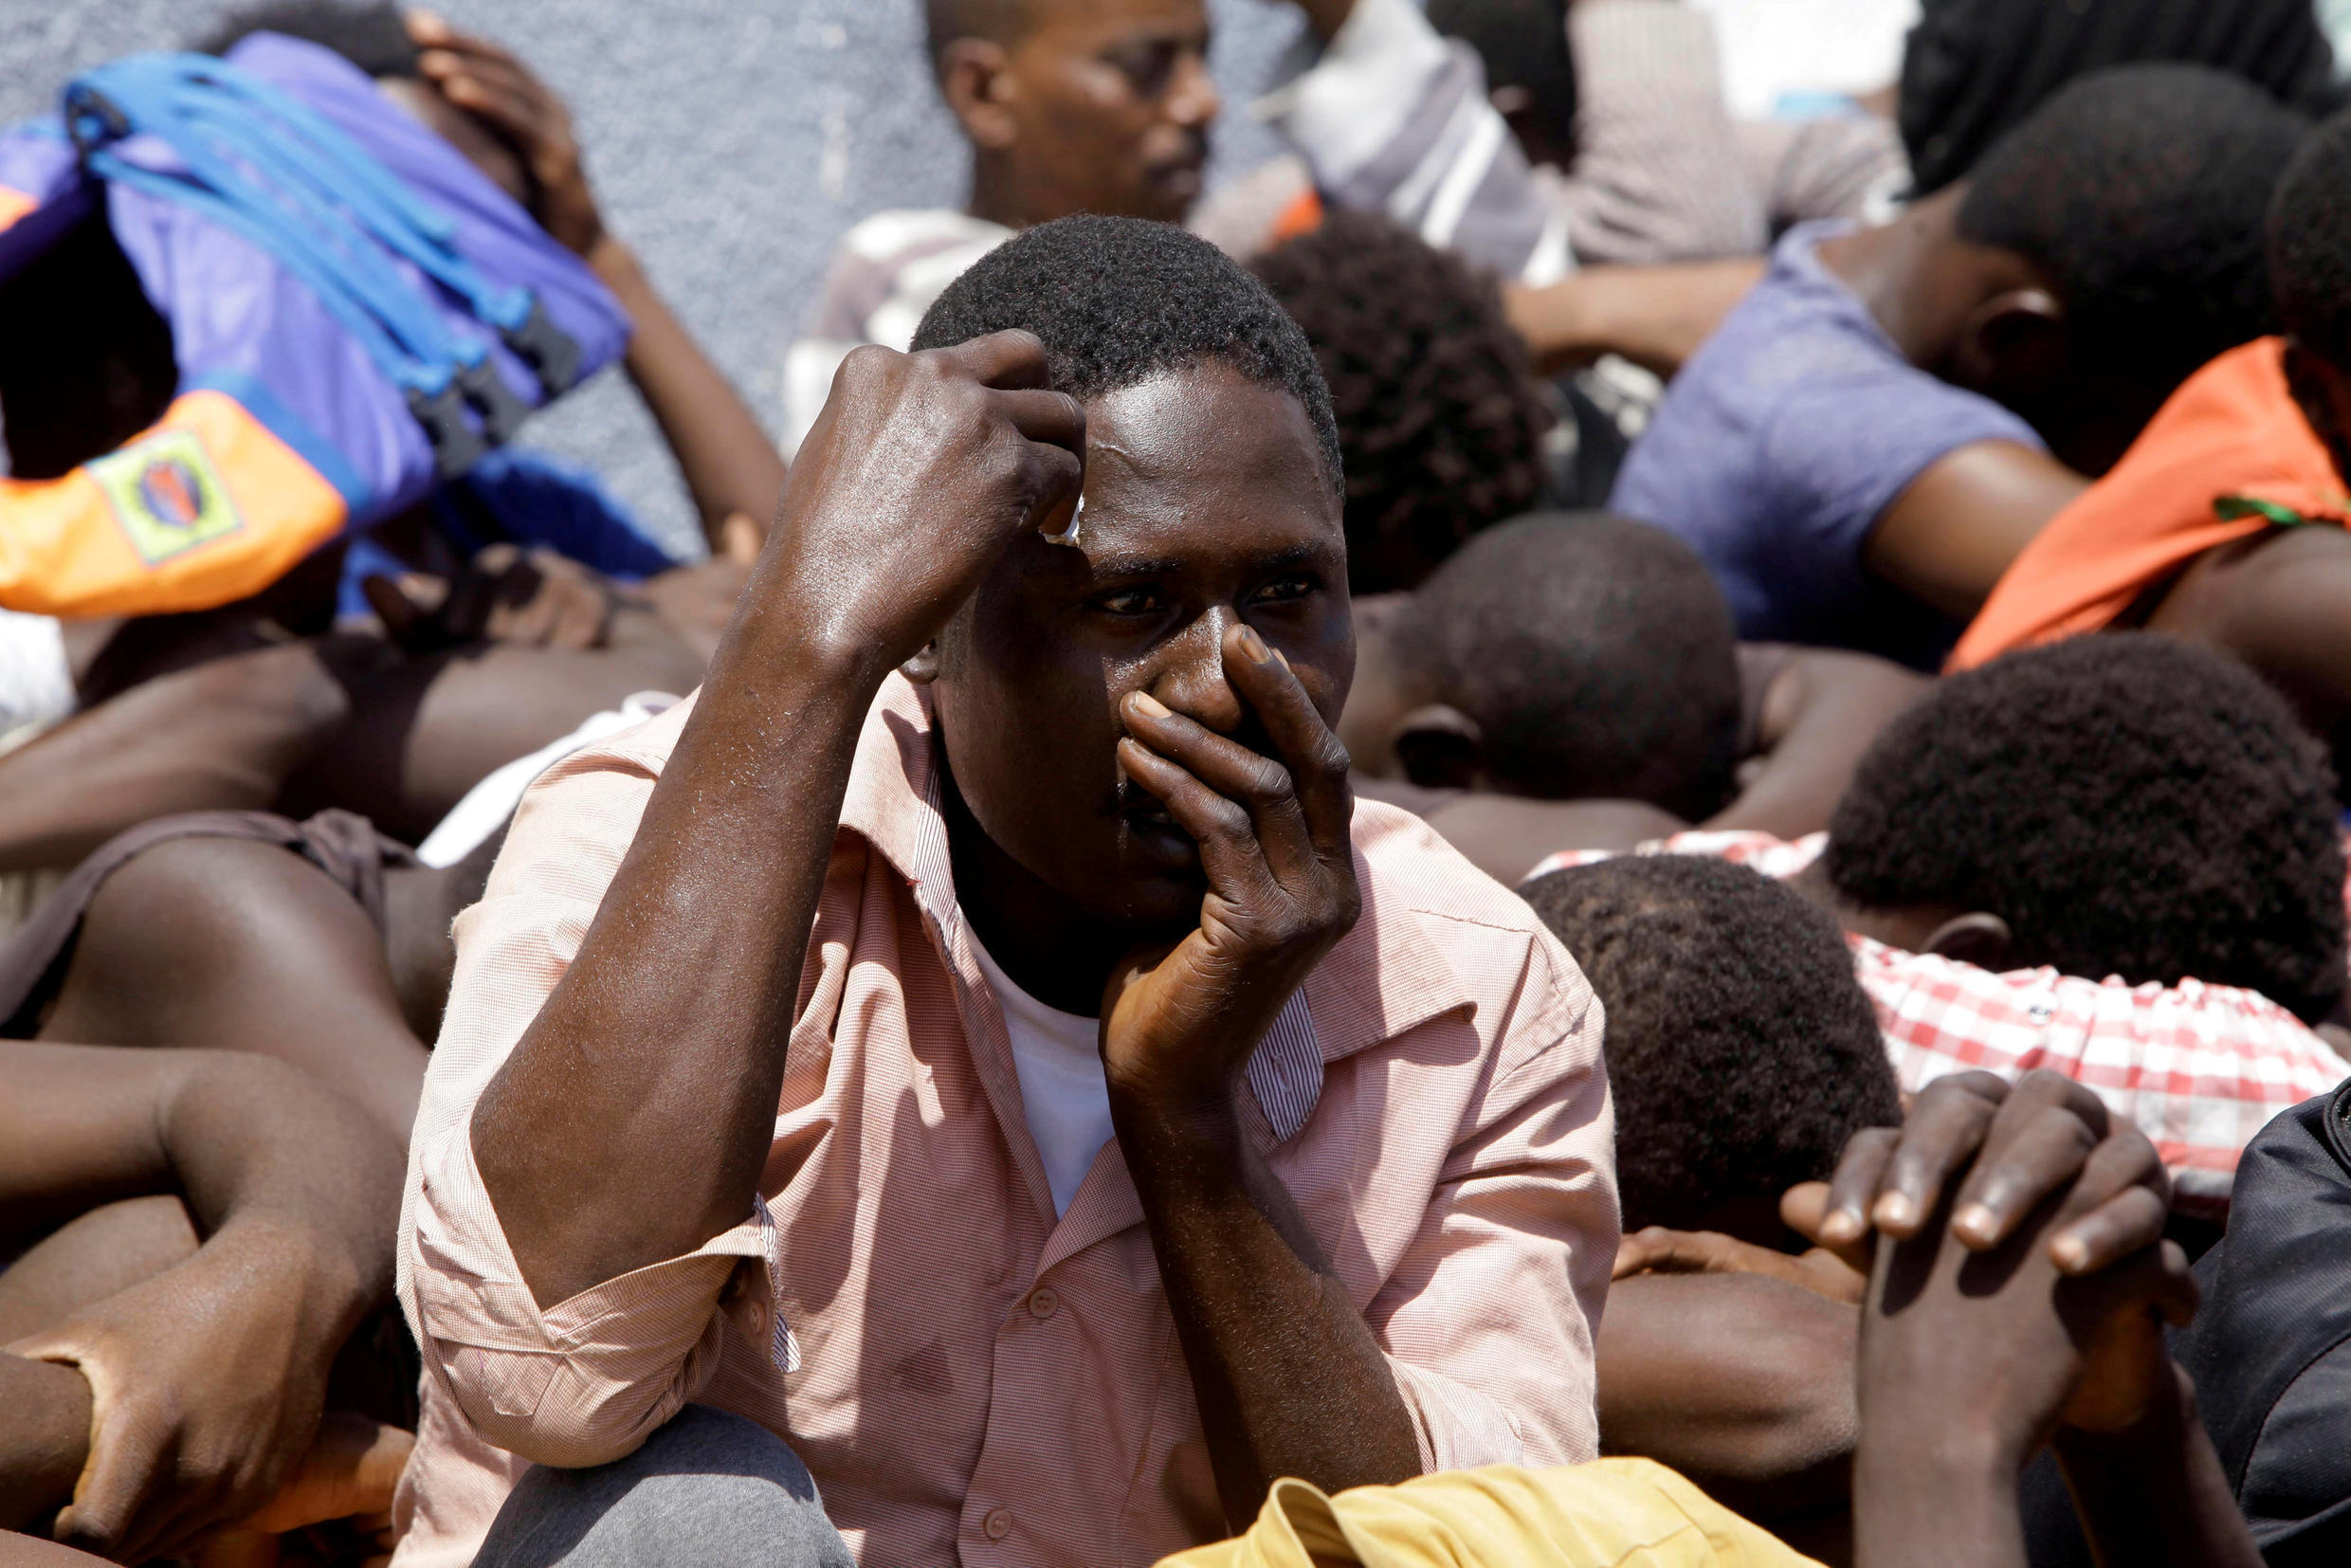 Some of those being held by the Libyan authorities at the Tajoura detention centre for suspected illegal migrants.